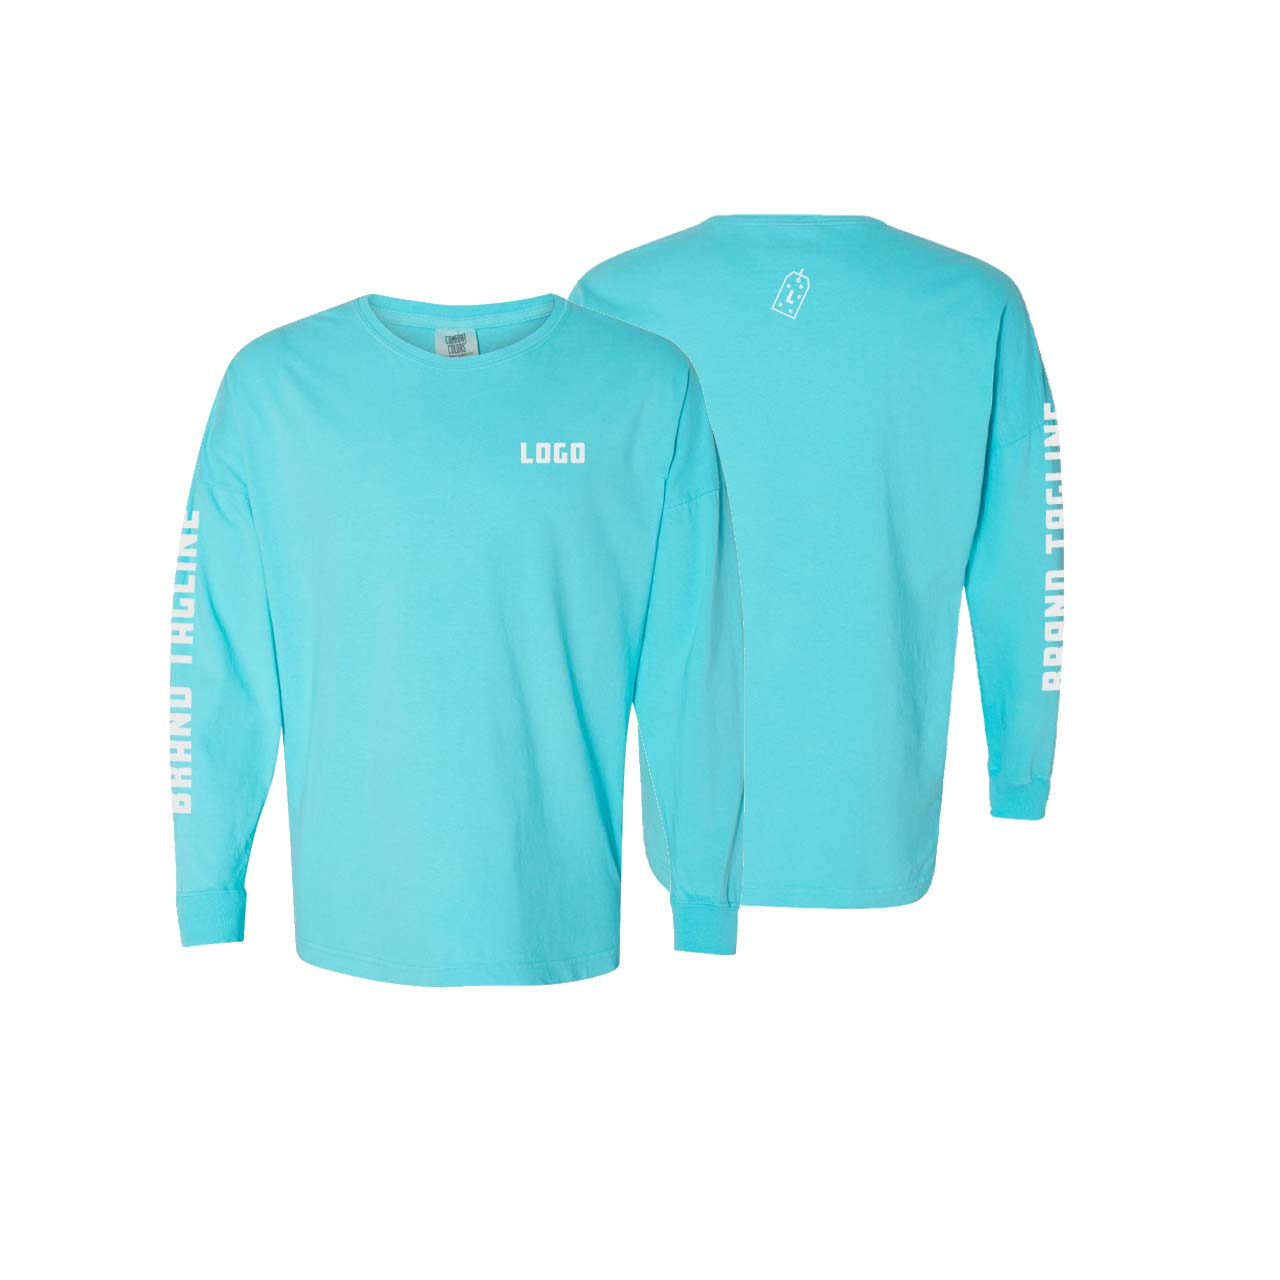 361697 drop shoulder long sleeve tee one color one location imprint